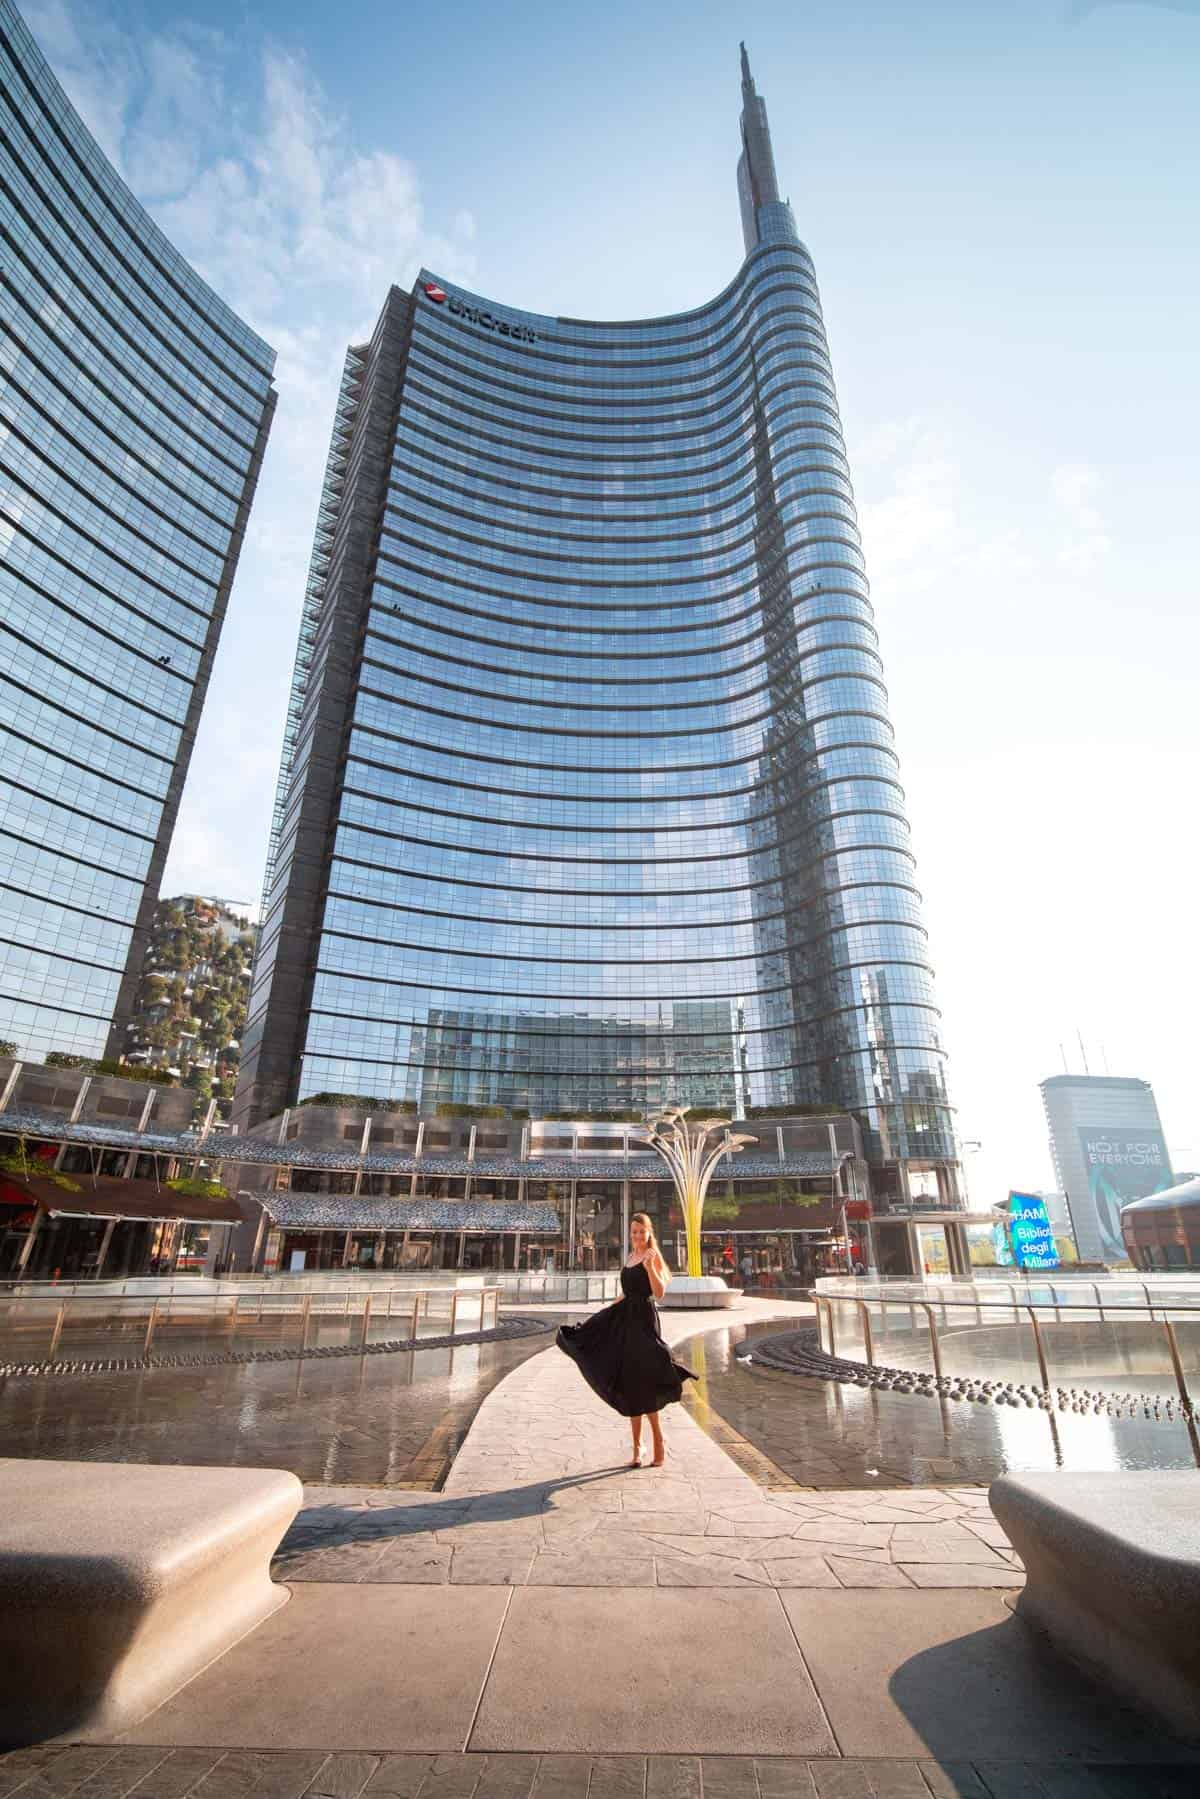 The Unicredit Tower dominates Piazza Gae Aulenti, the contemporary square in the heart of Porta Nuova, Milan, Italy